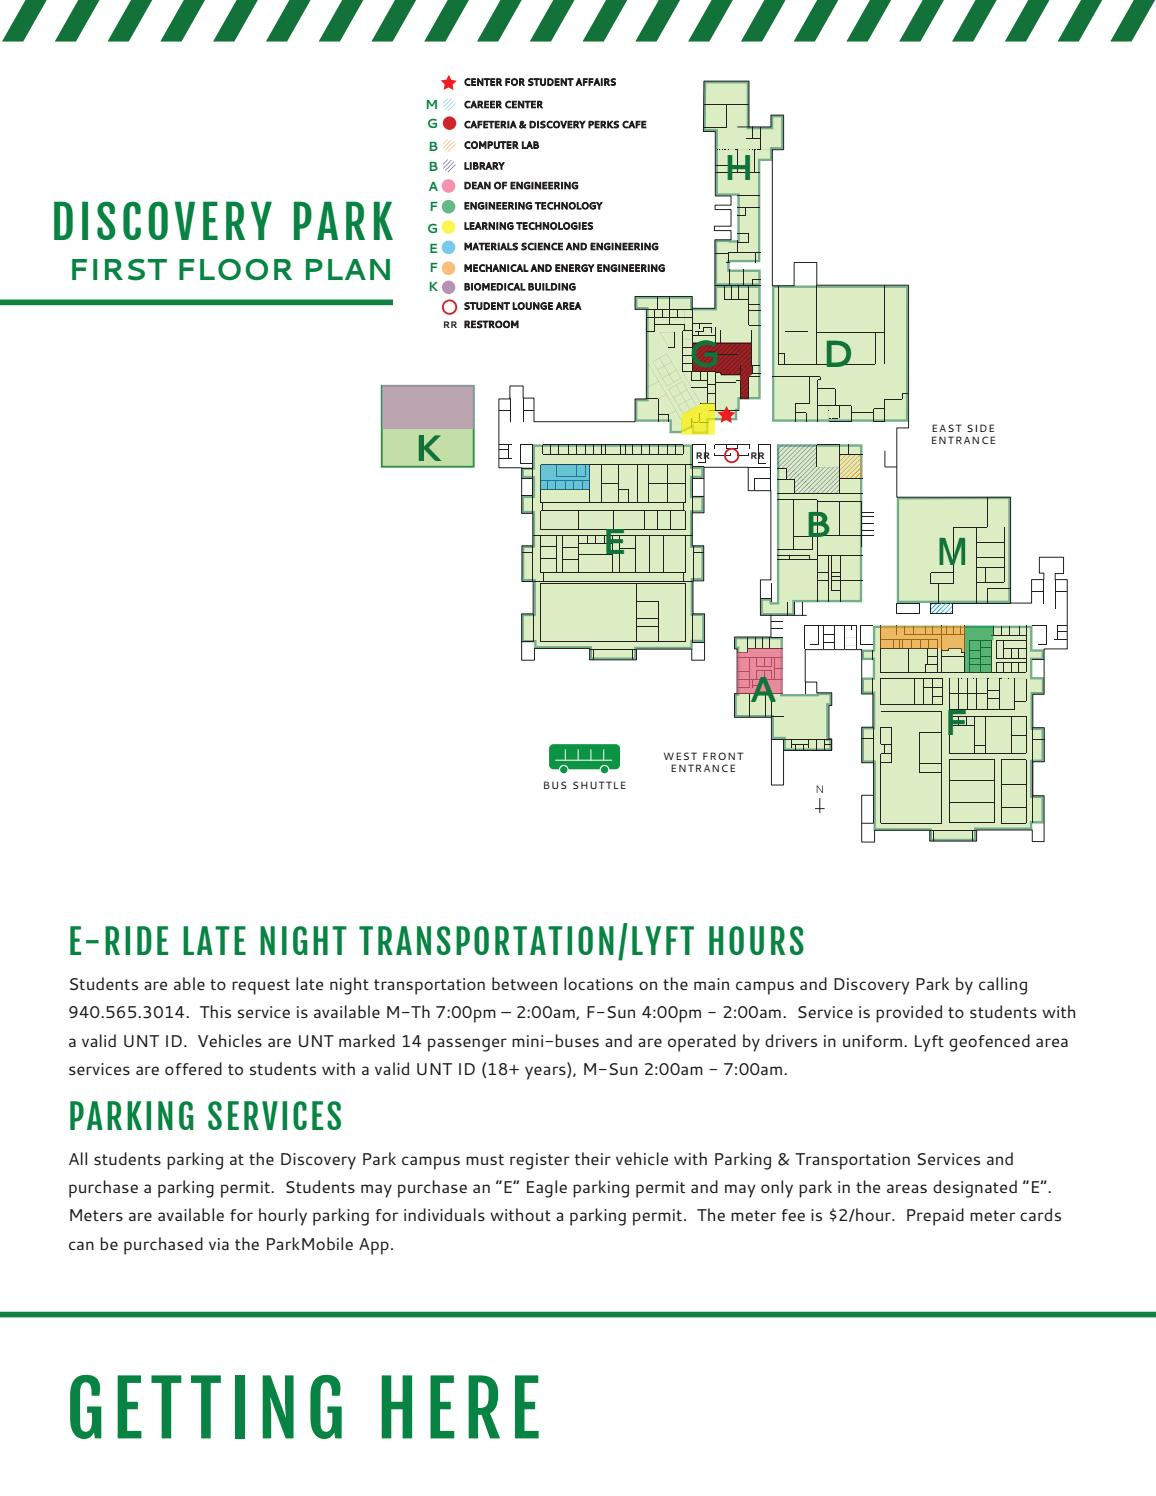 Discovery Park First Floor Plan